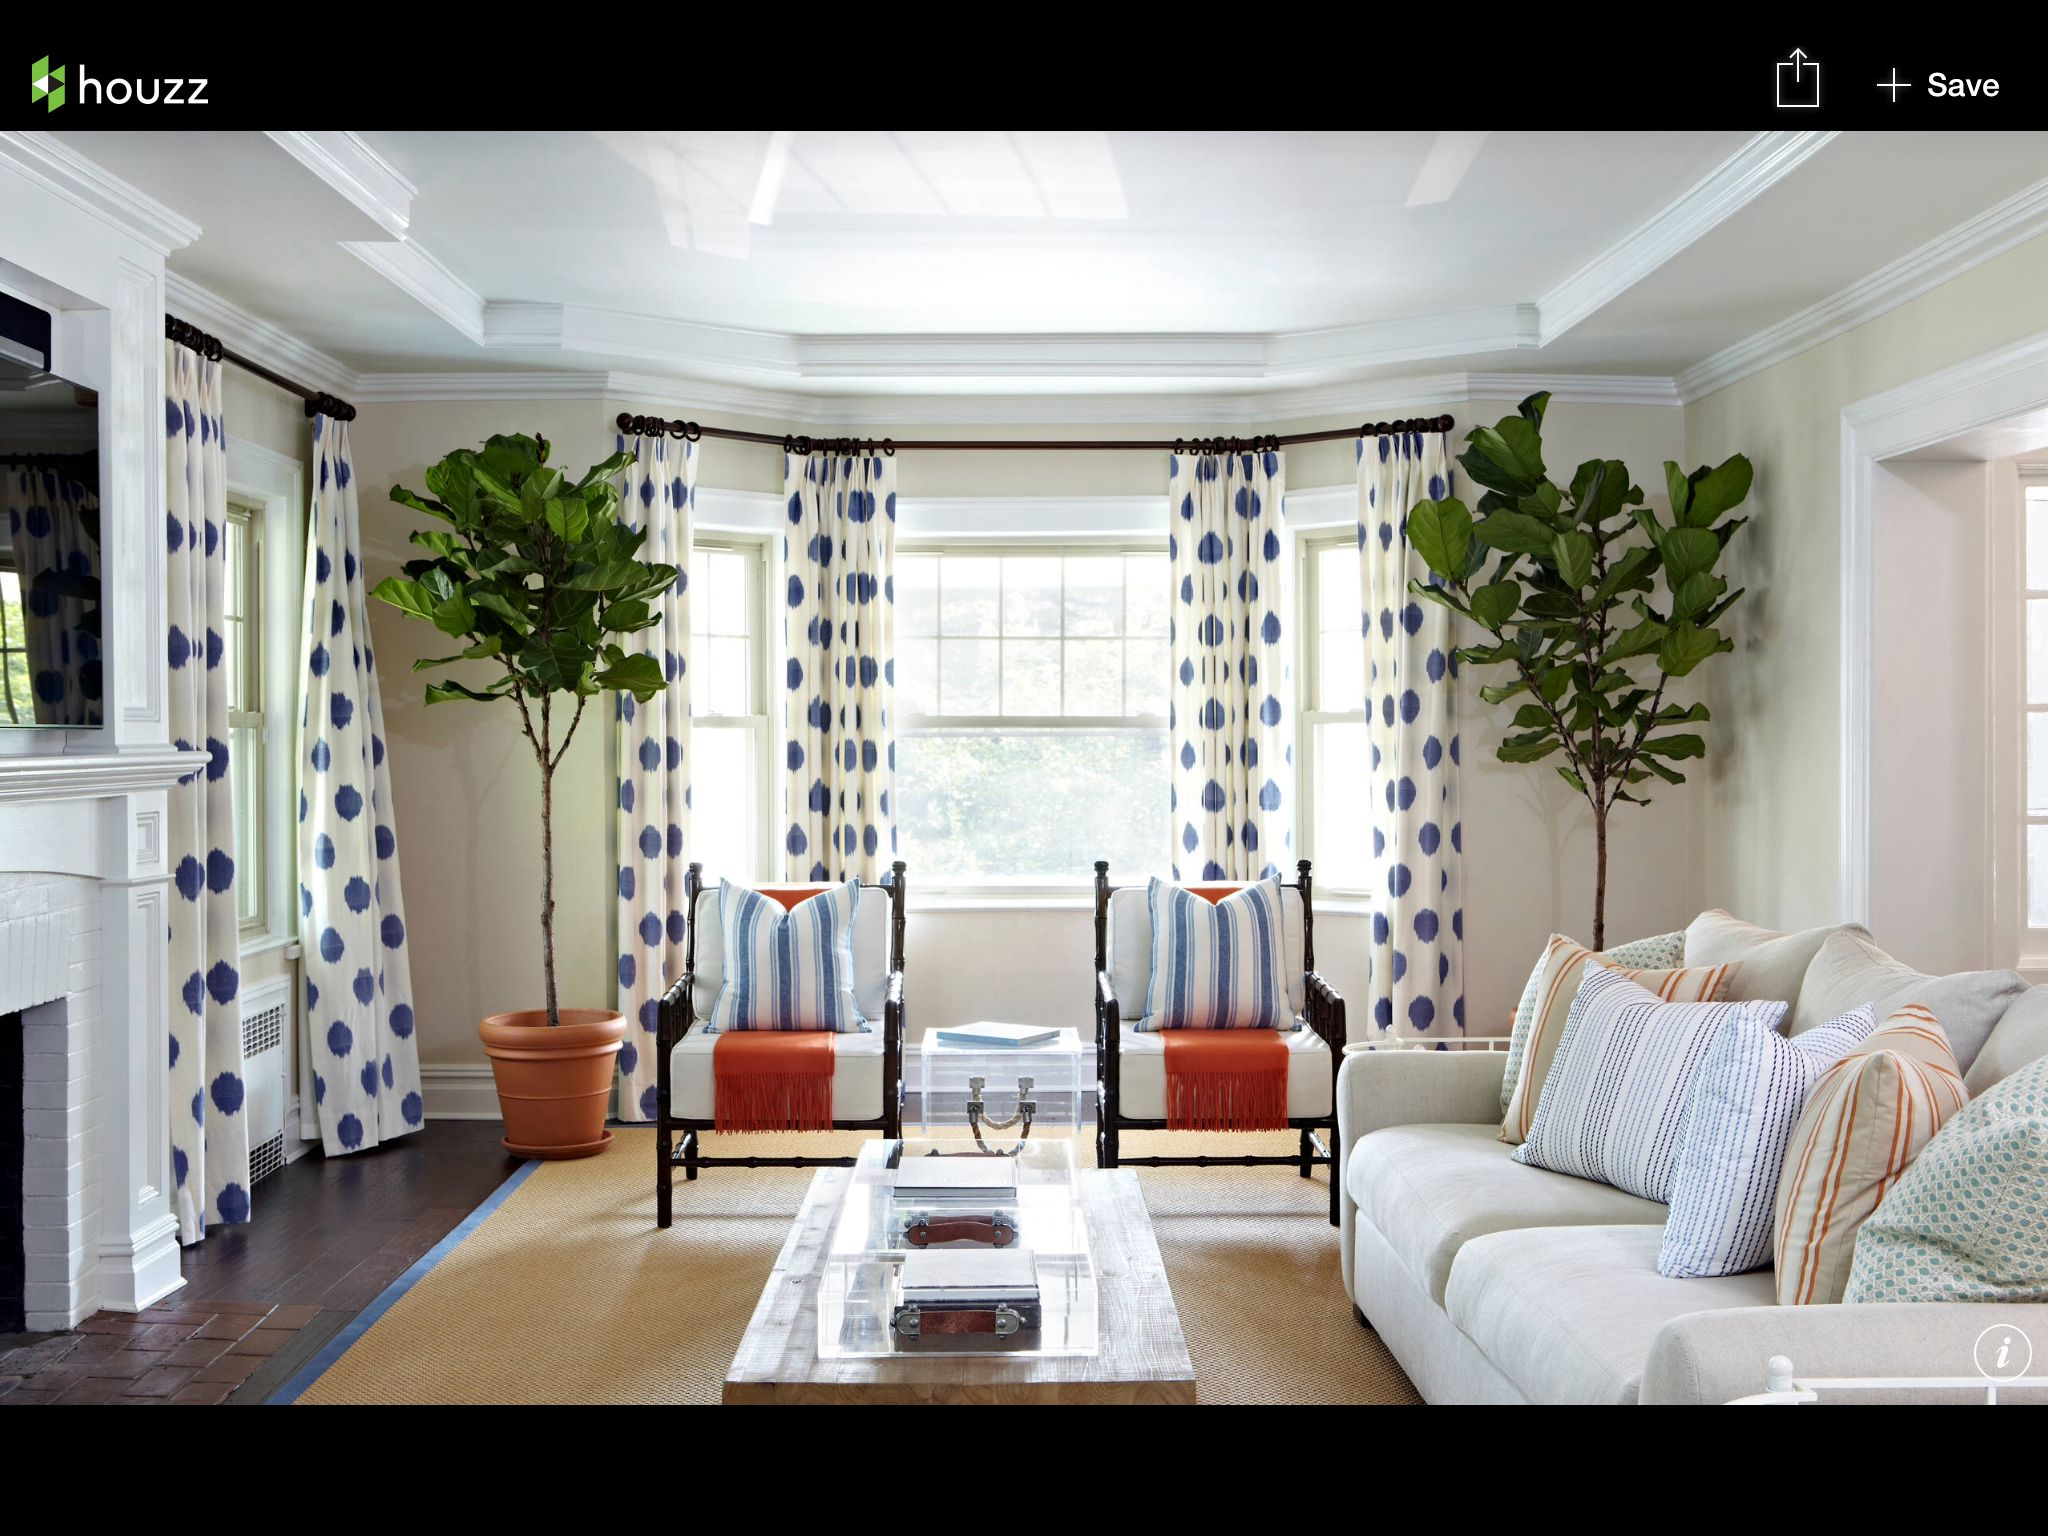 Living Room Design Houzz Delectable Living Room Inspiration From Houzz  House Inspiration  Pinterest Design Inspiration